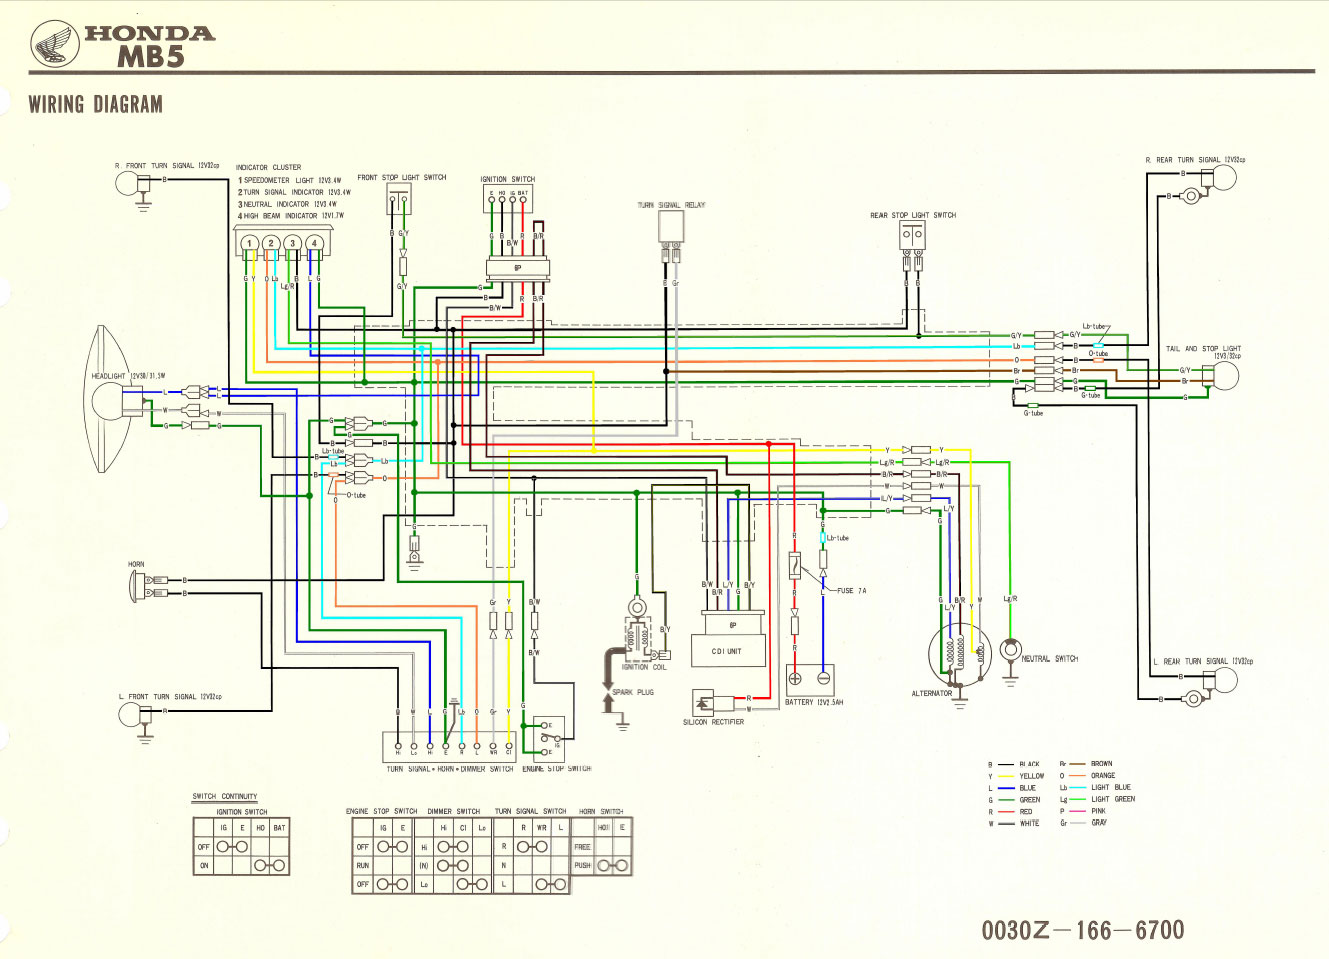 Xl350r Wiring Diagram Page 3 And Schematics Honda Cb125s Chilton Electrical 1982 Mb5 Xl250r 1987